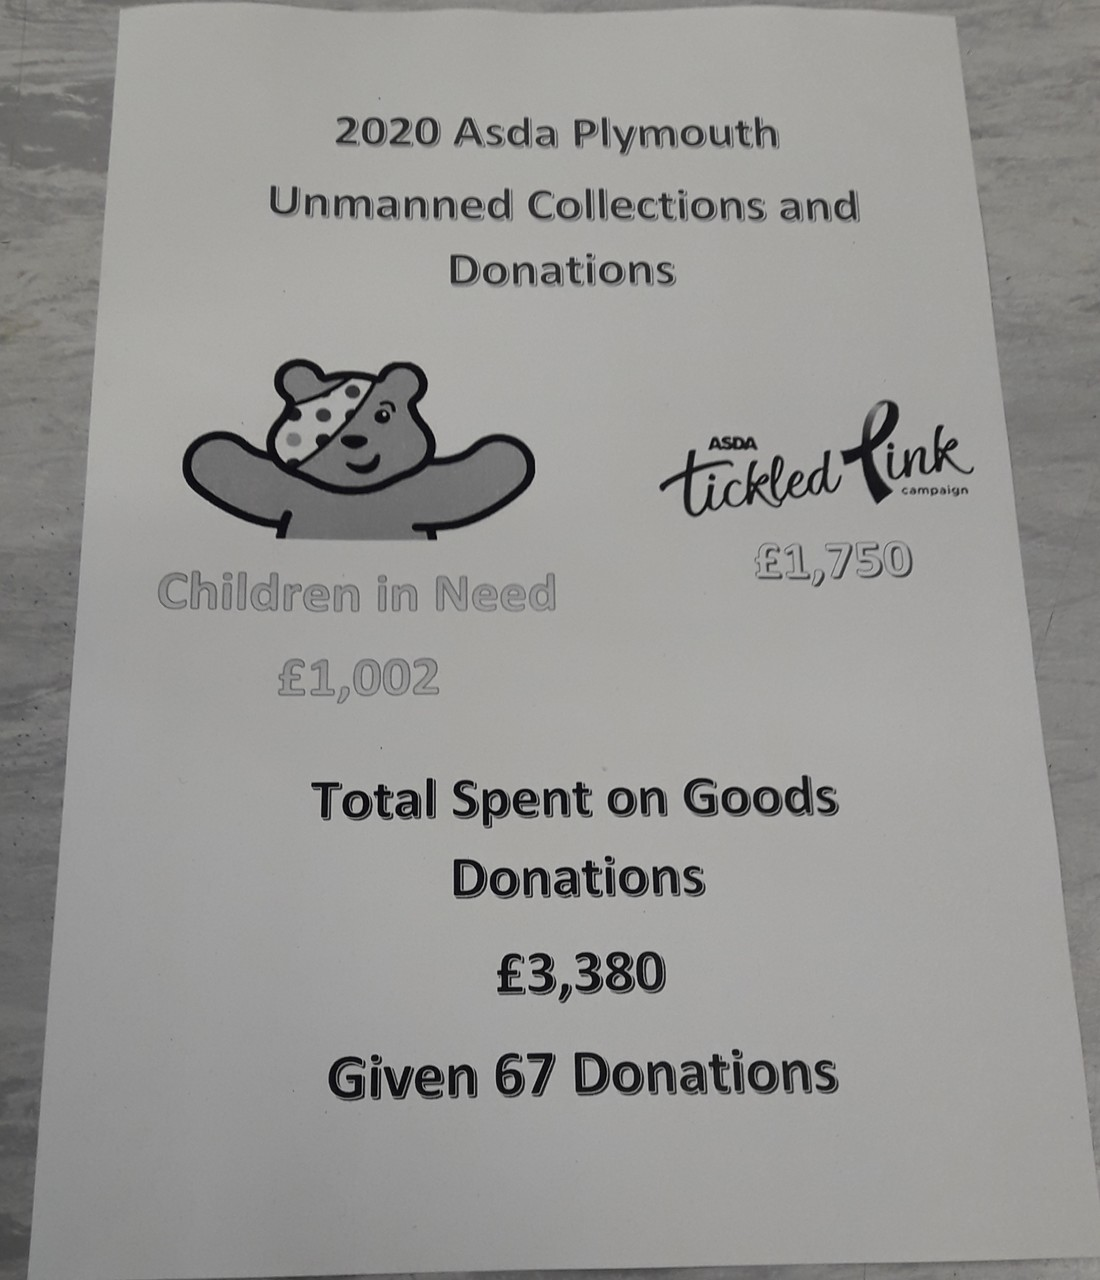 Collection Buckets and Donations | Asda Plymouth